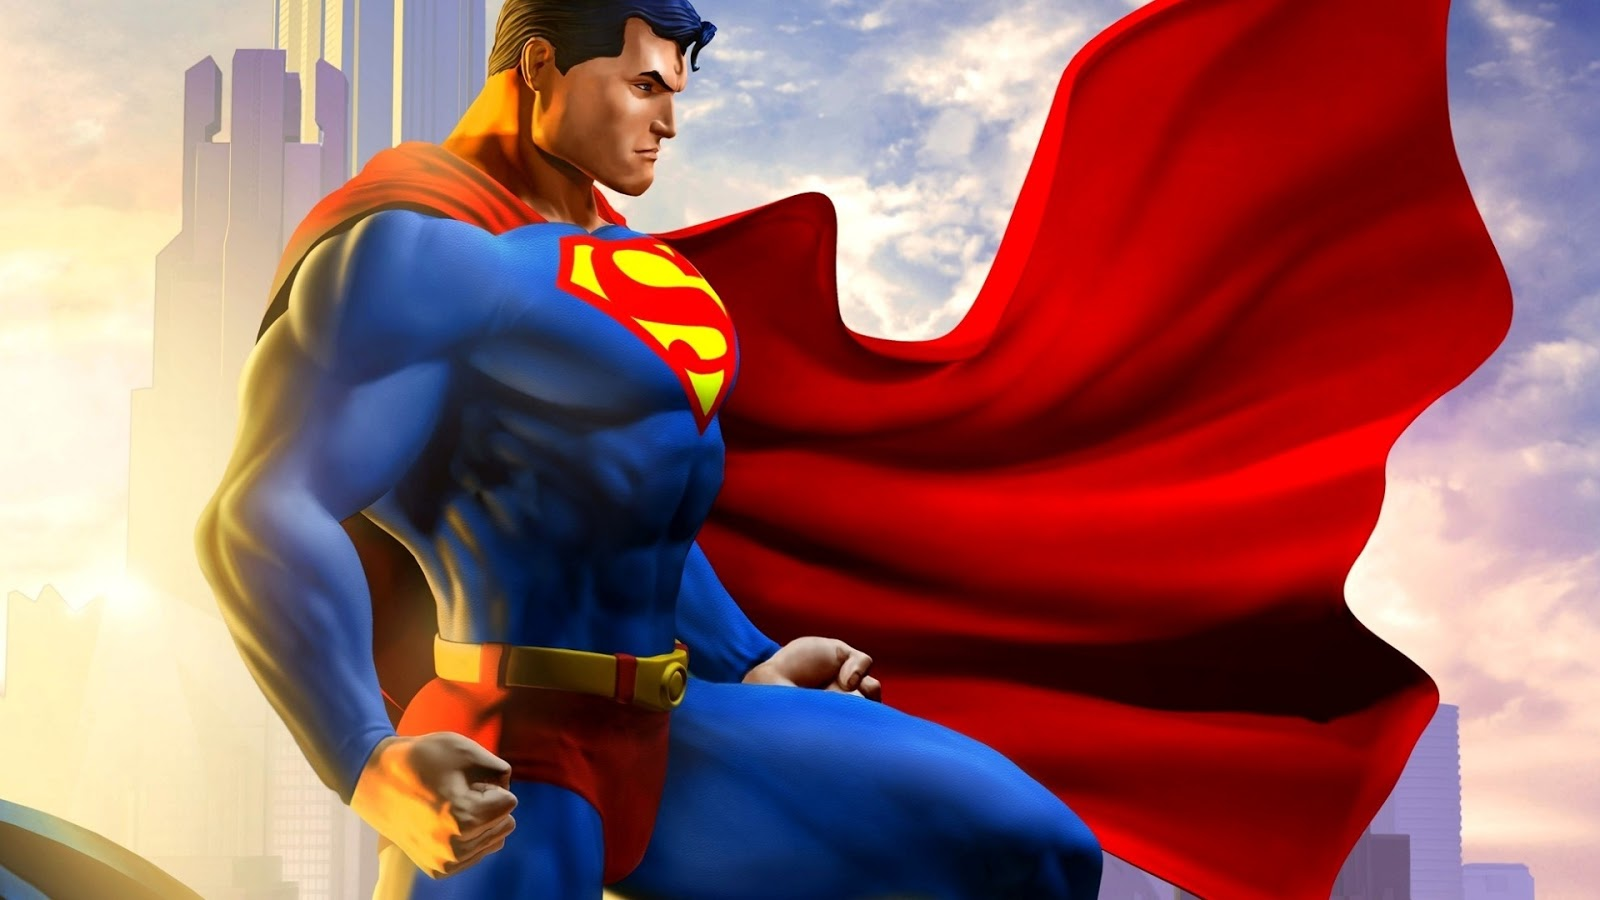 Man Of Steal Superman Wallpaper Hd